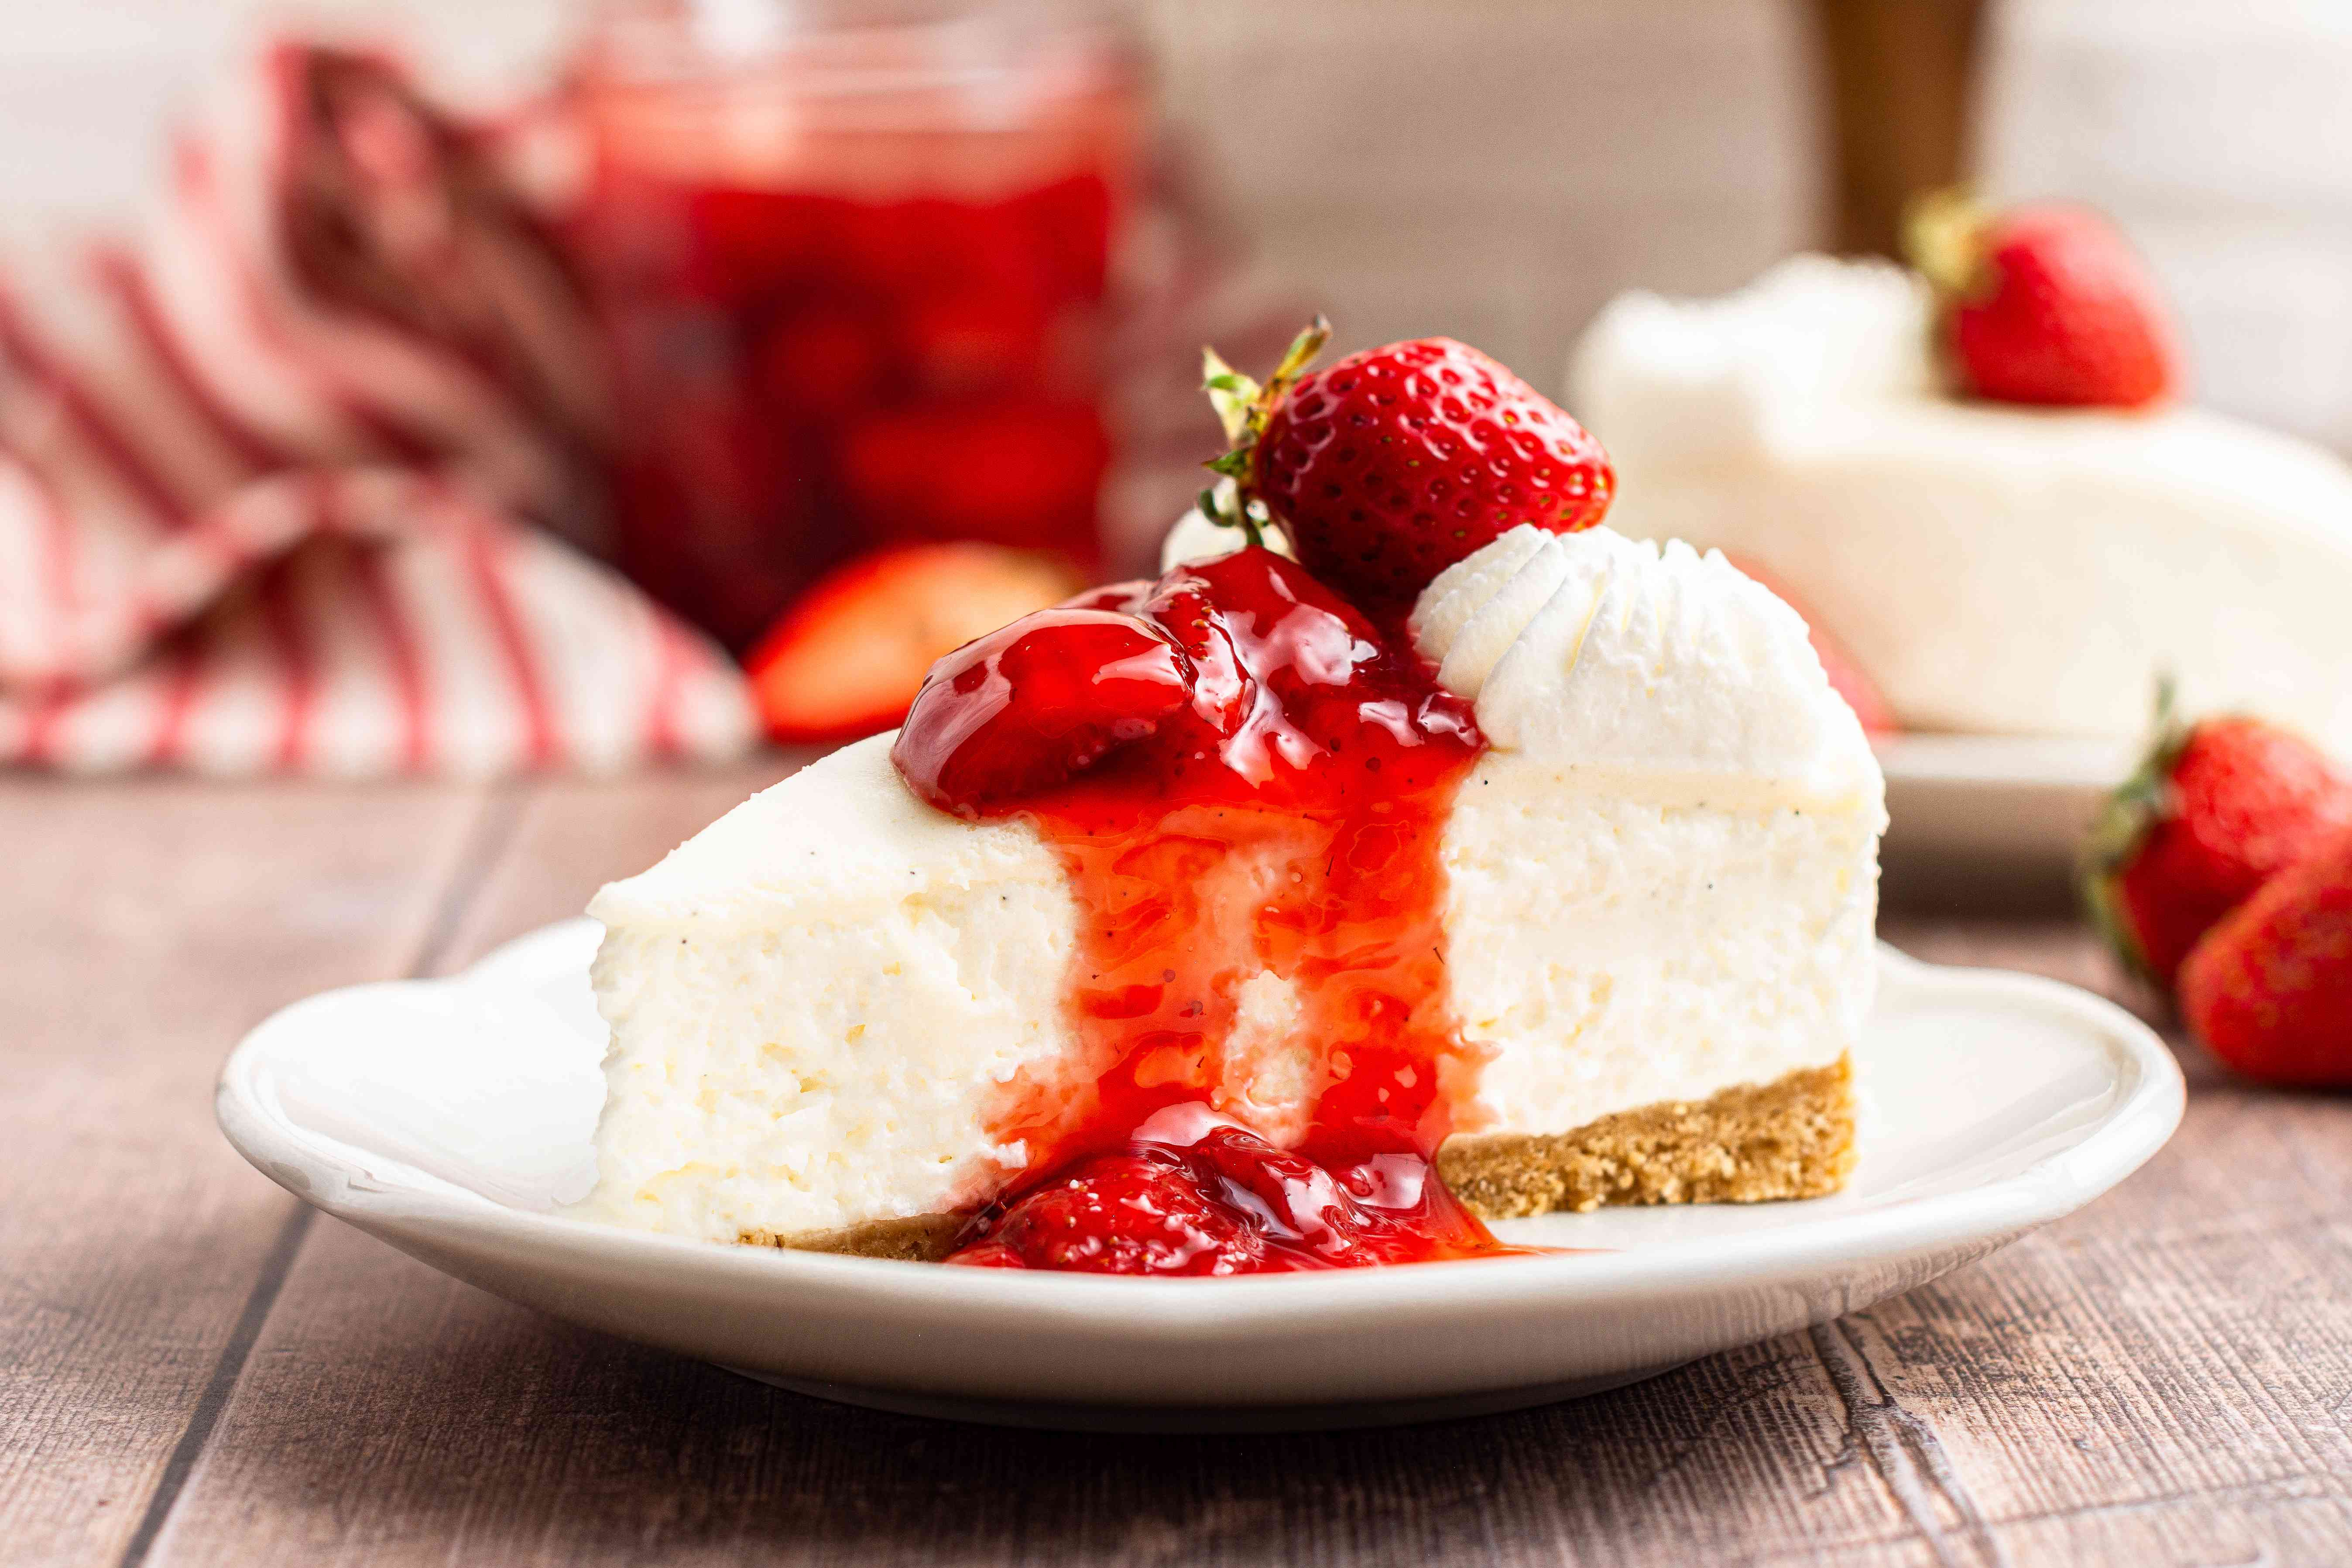 A side view of a plate with easy no bake cheesecake topped with strawberry preserves.